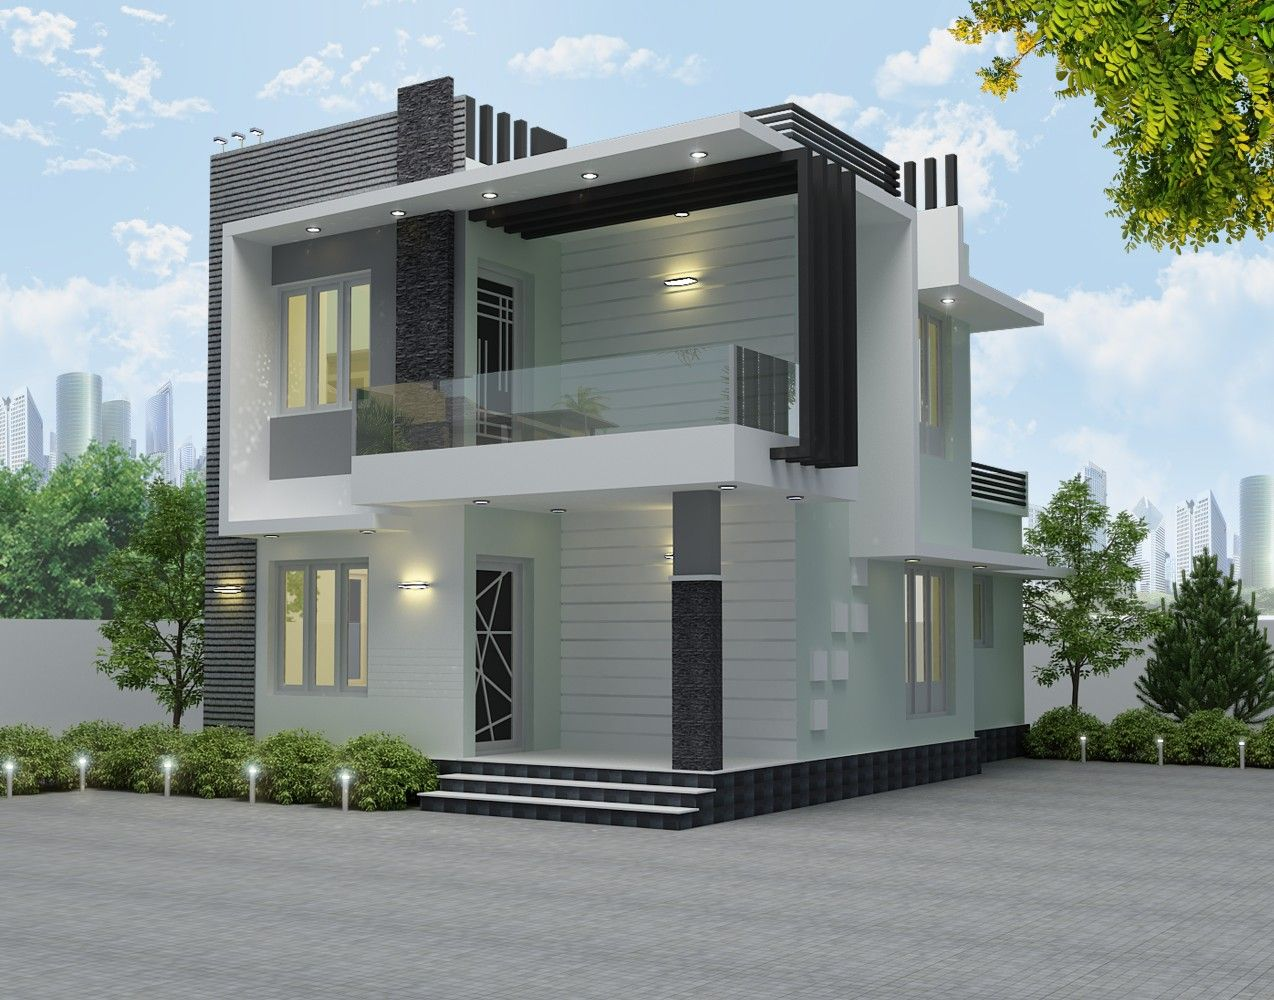 House map duplex indian plans dream home design also image result for elevations of independent houses great rh pinterest